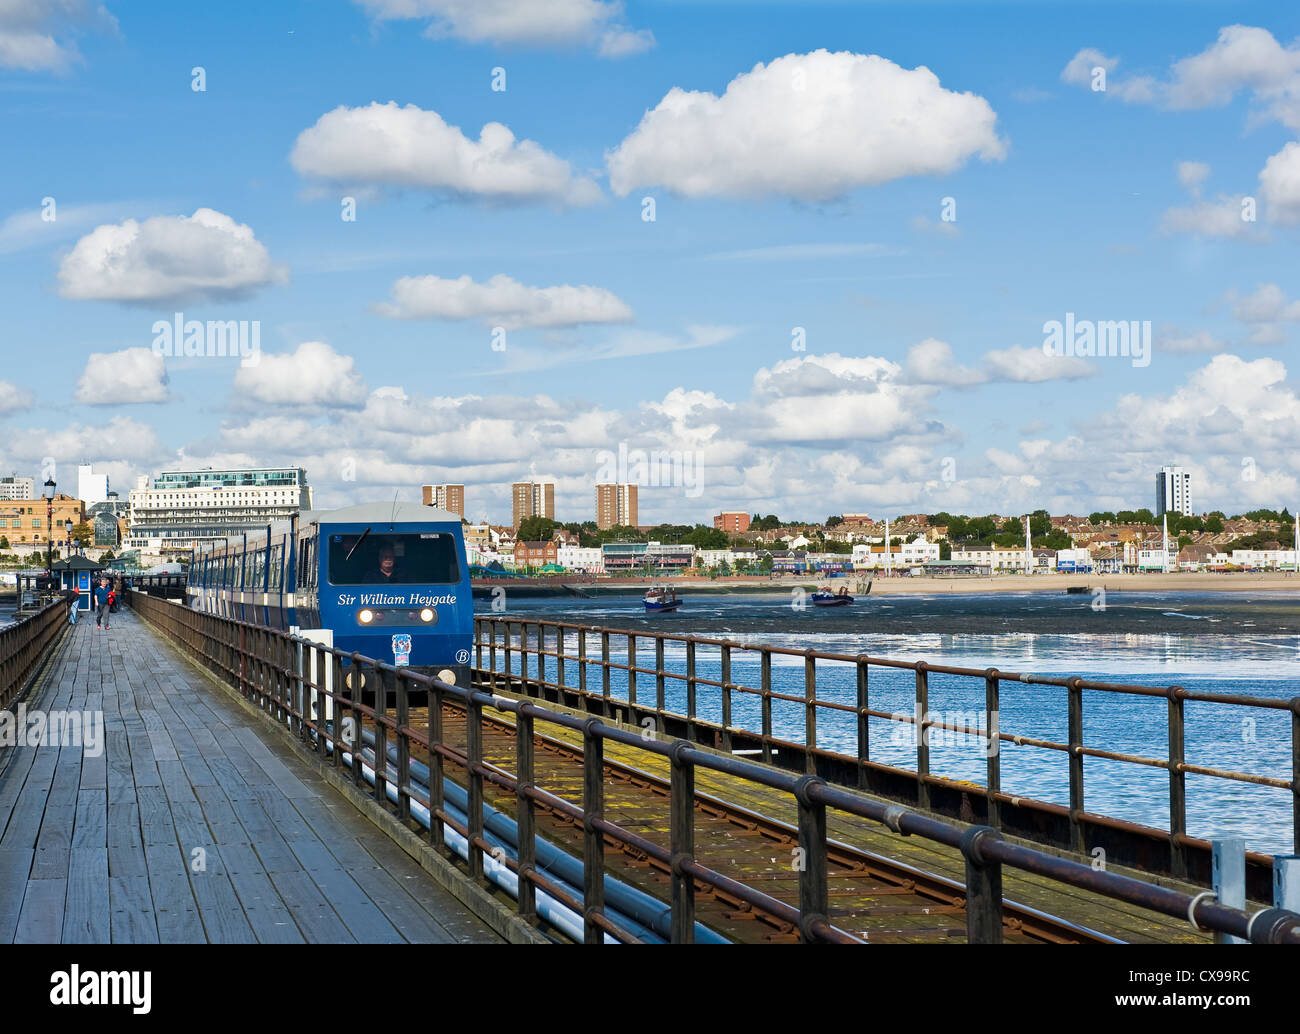 Southend pier with train. - Stock Image